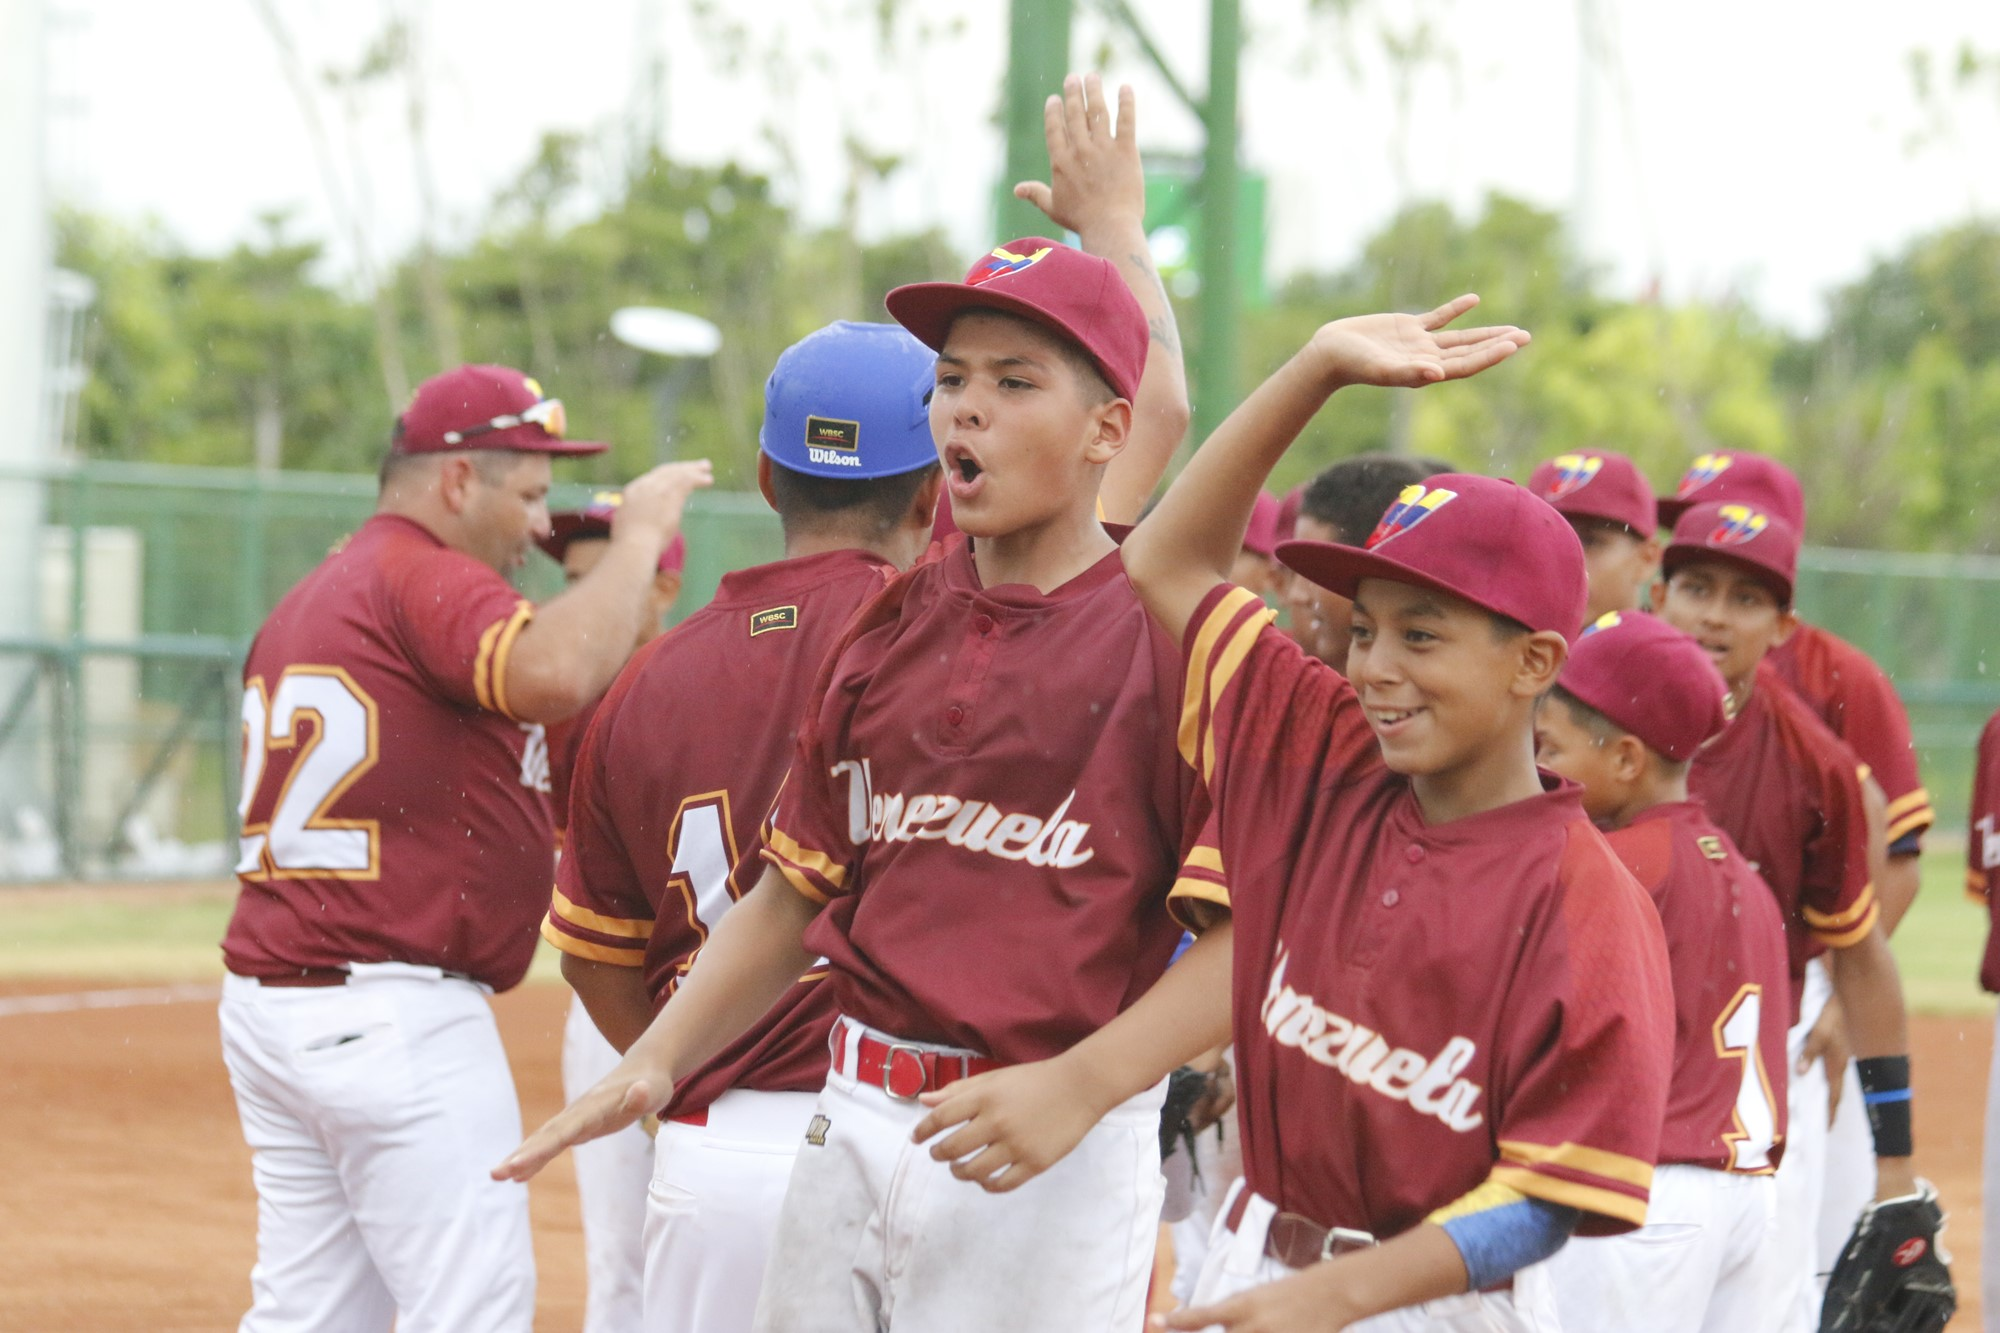 Venezuela defeated the USA to remain undefeated